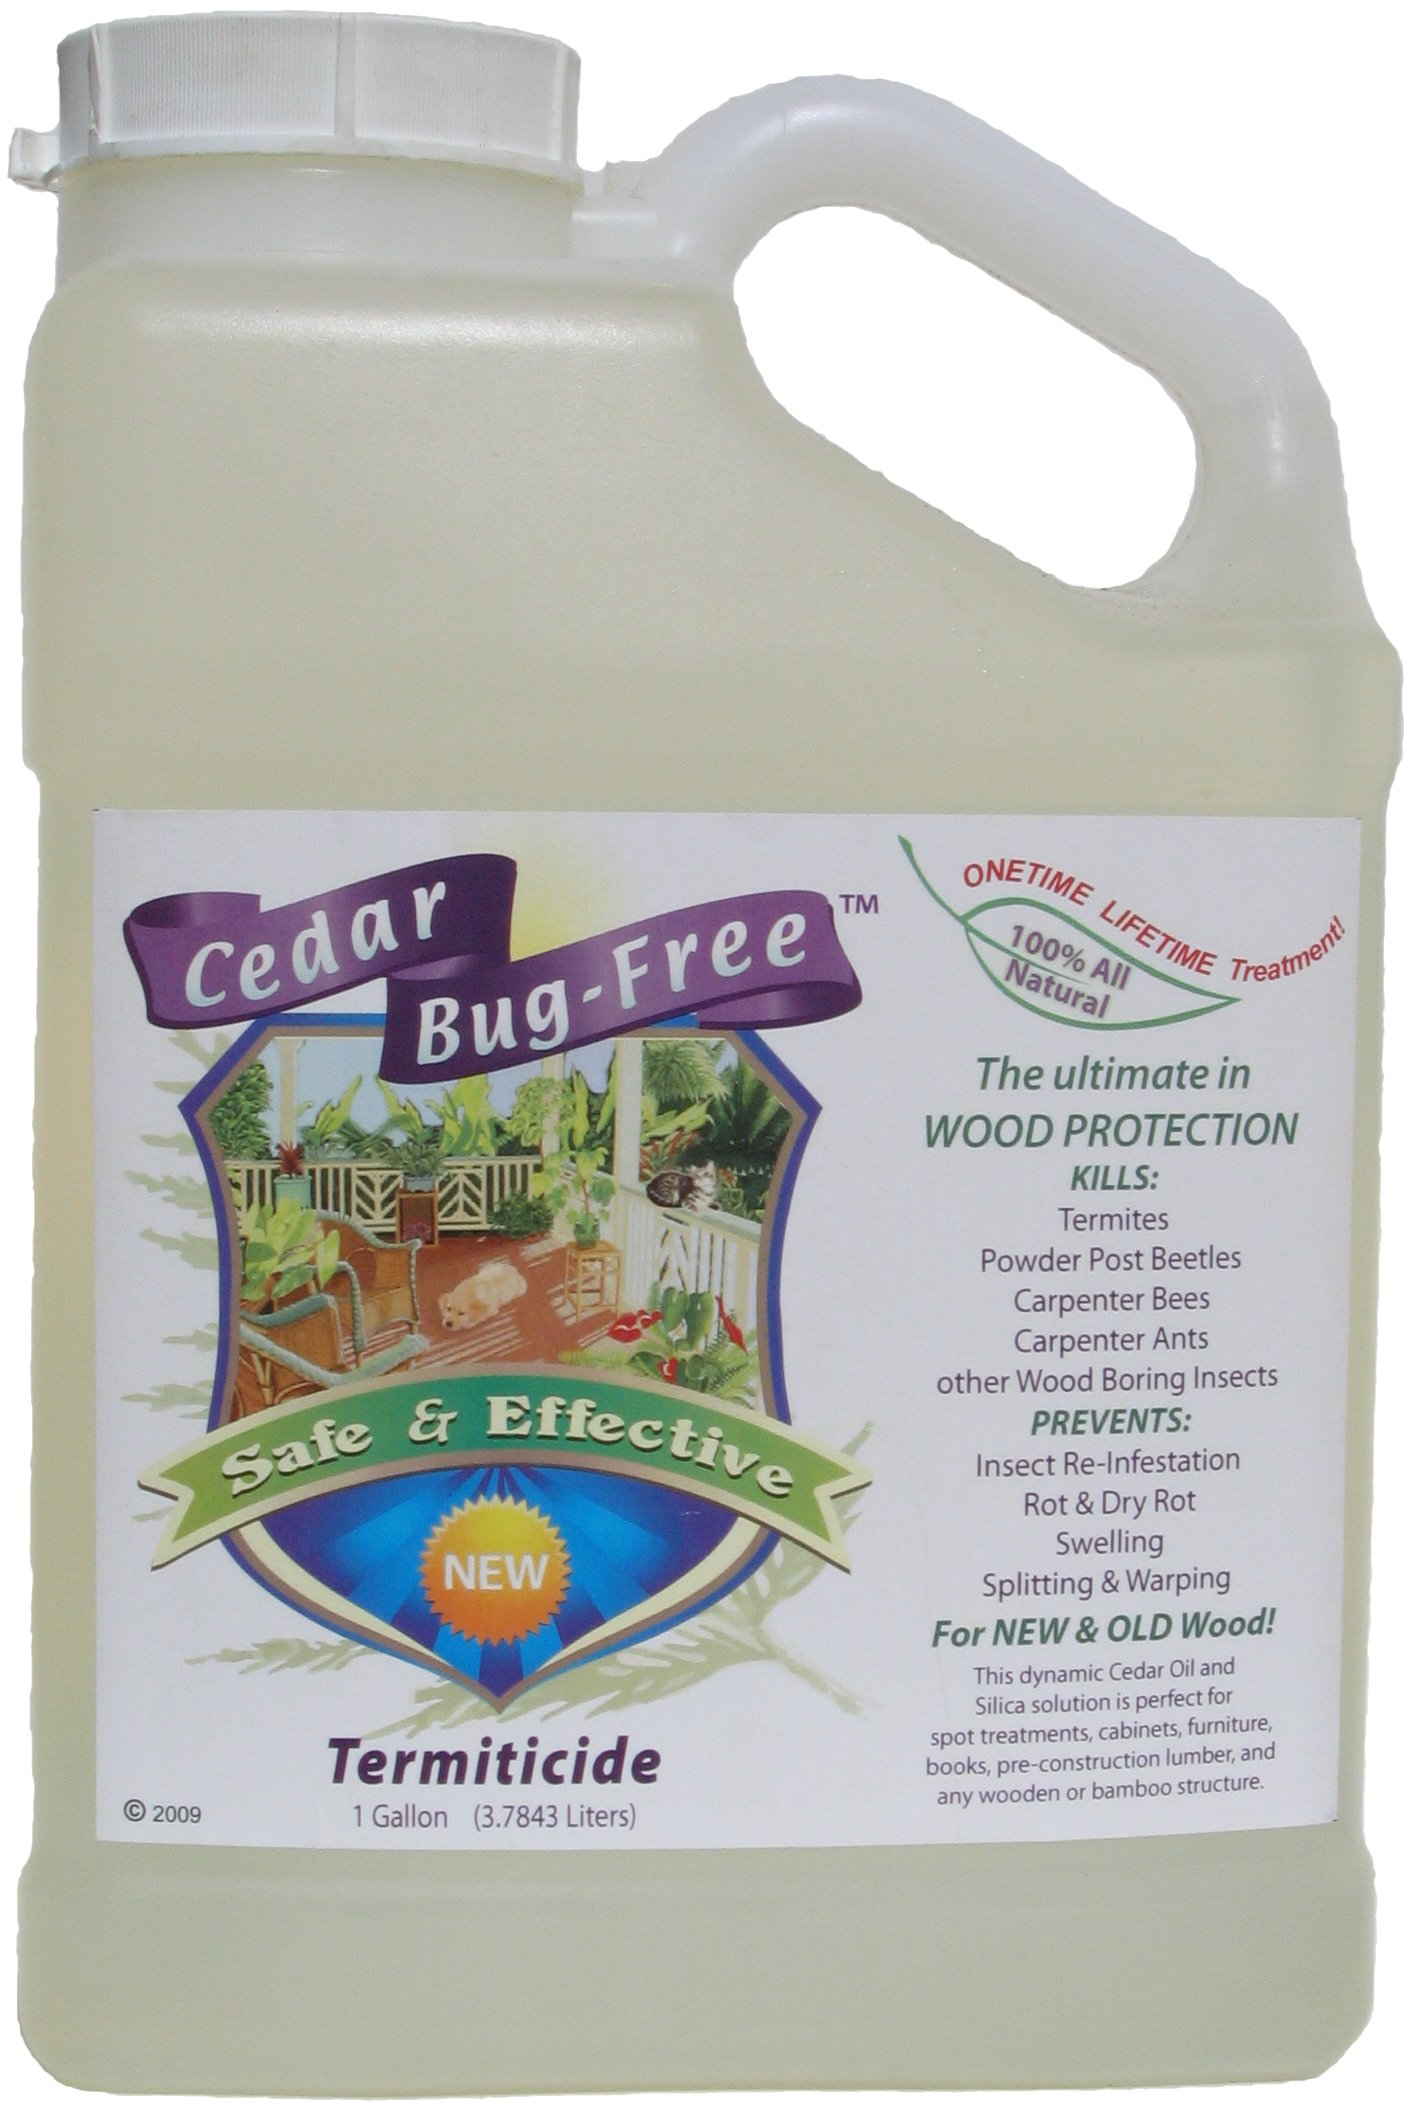 Termite Control - Cedar Bug-Free Termiticide. Natural Termite Treatment. Termite Spray - 1 gallon by Cedar Bug-Free